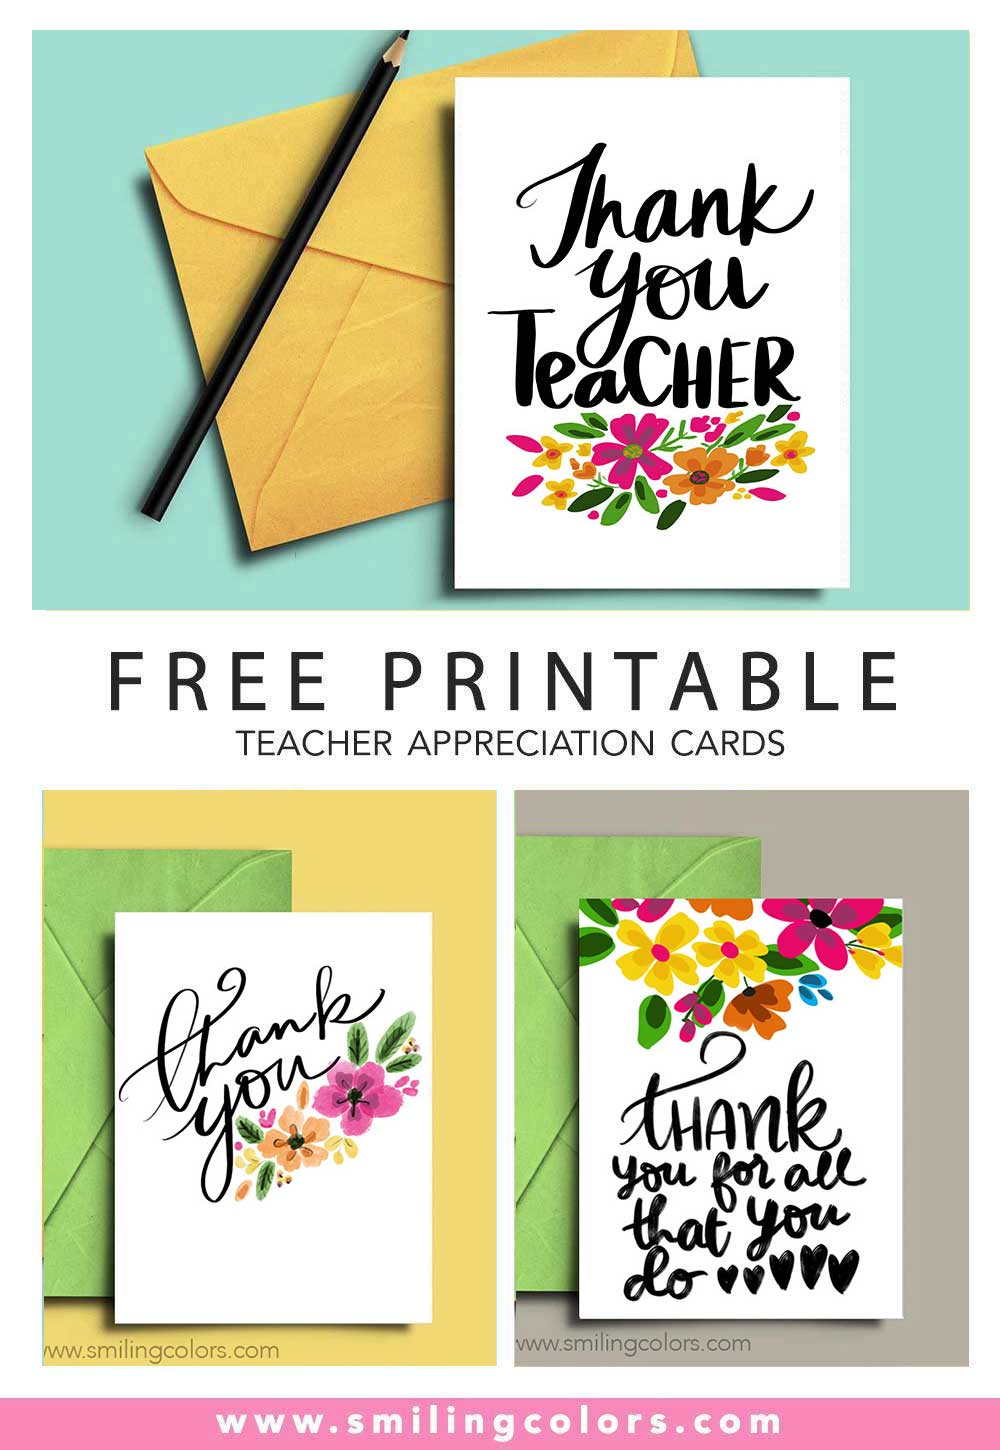 image about Printable Teacher Appreciation Card called Thank on your own trainer: A fastened of No cost printable notice playing cards